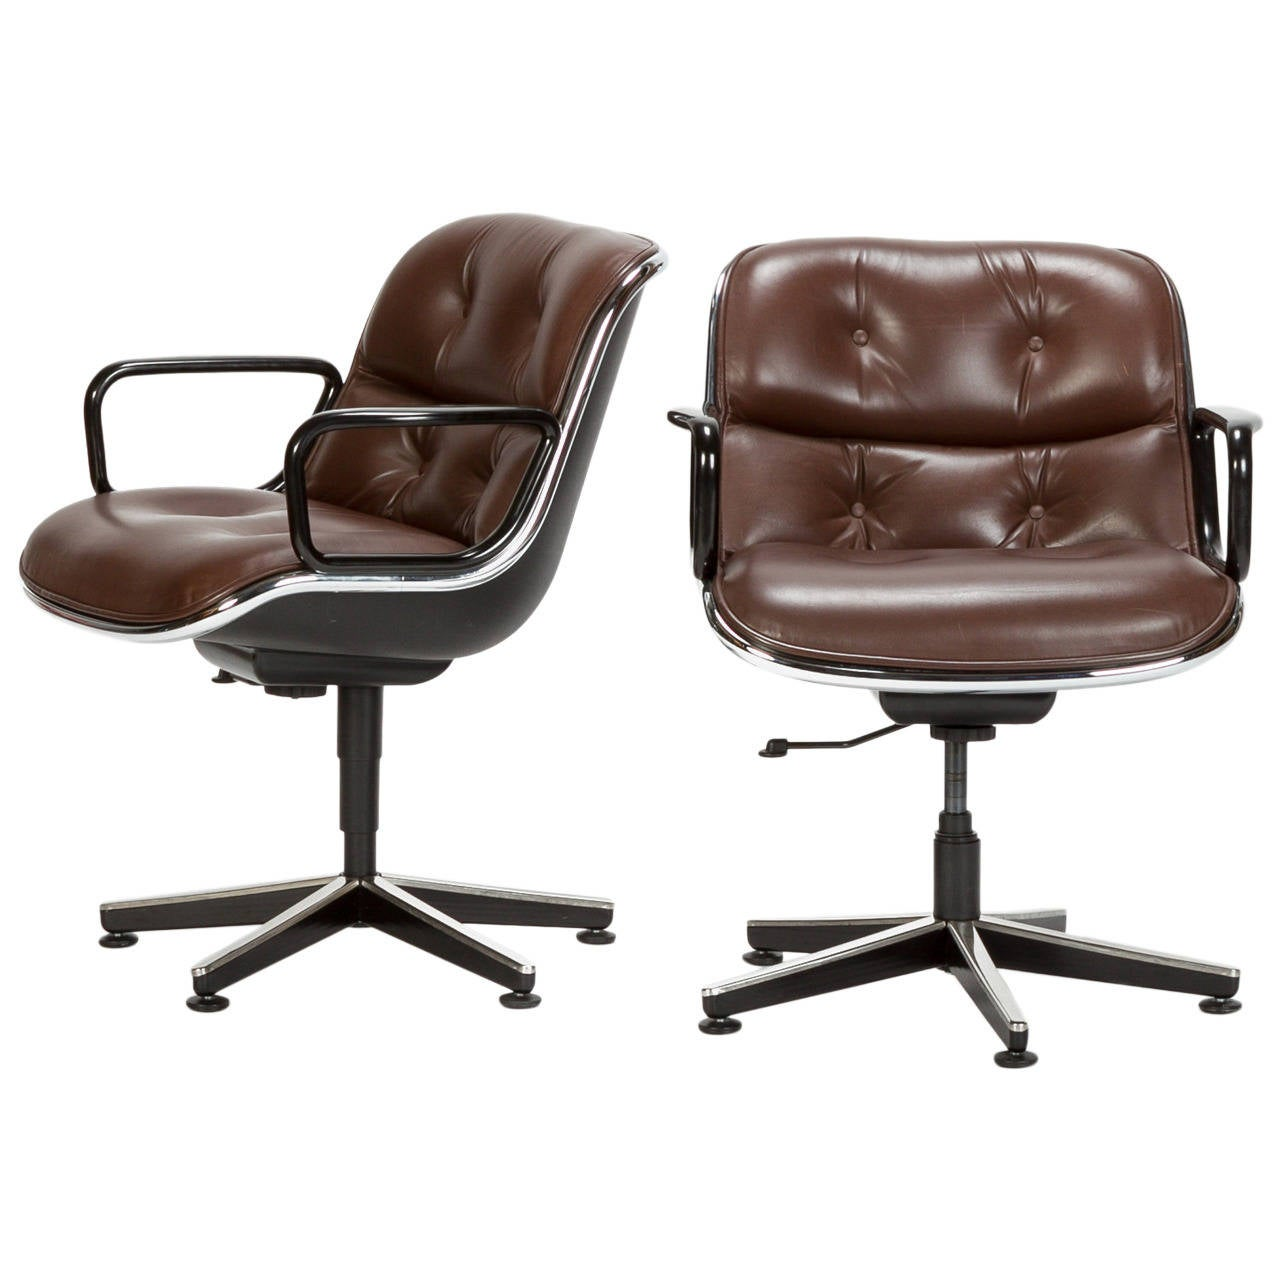 pollock executive chair replica and sofa covers for sale pair of chairs model 12e1 by charles